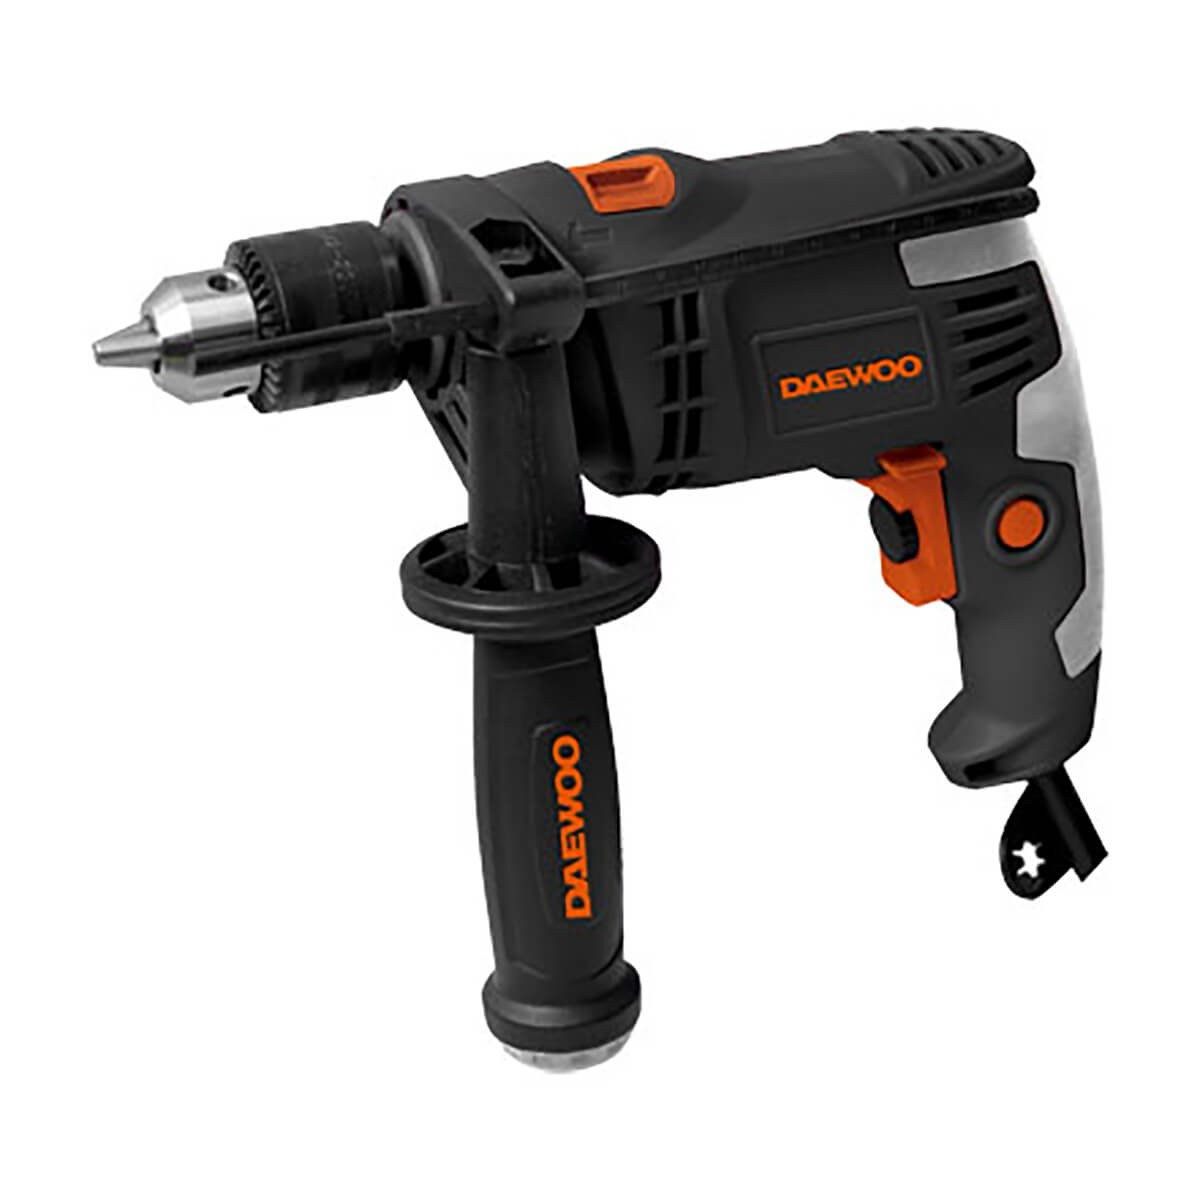 Daewoo 500W Impact Drill Impact Driver with Keyed Chuck DAID 500